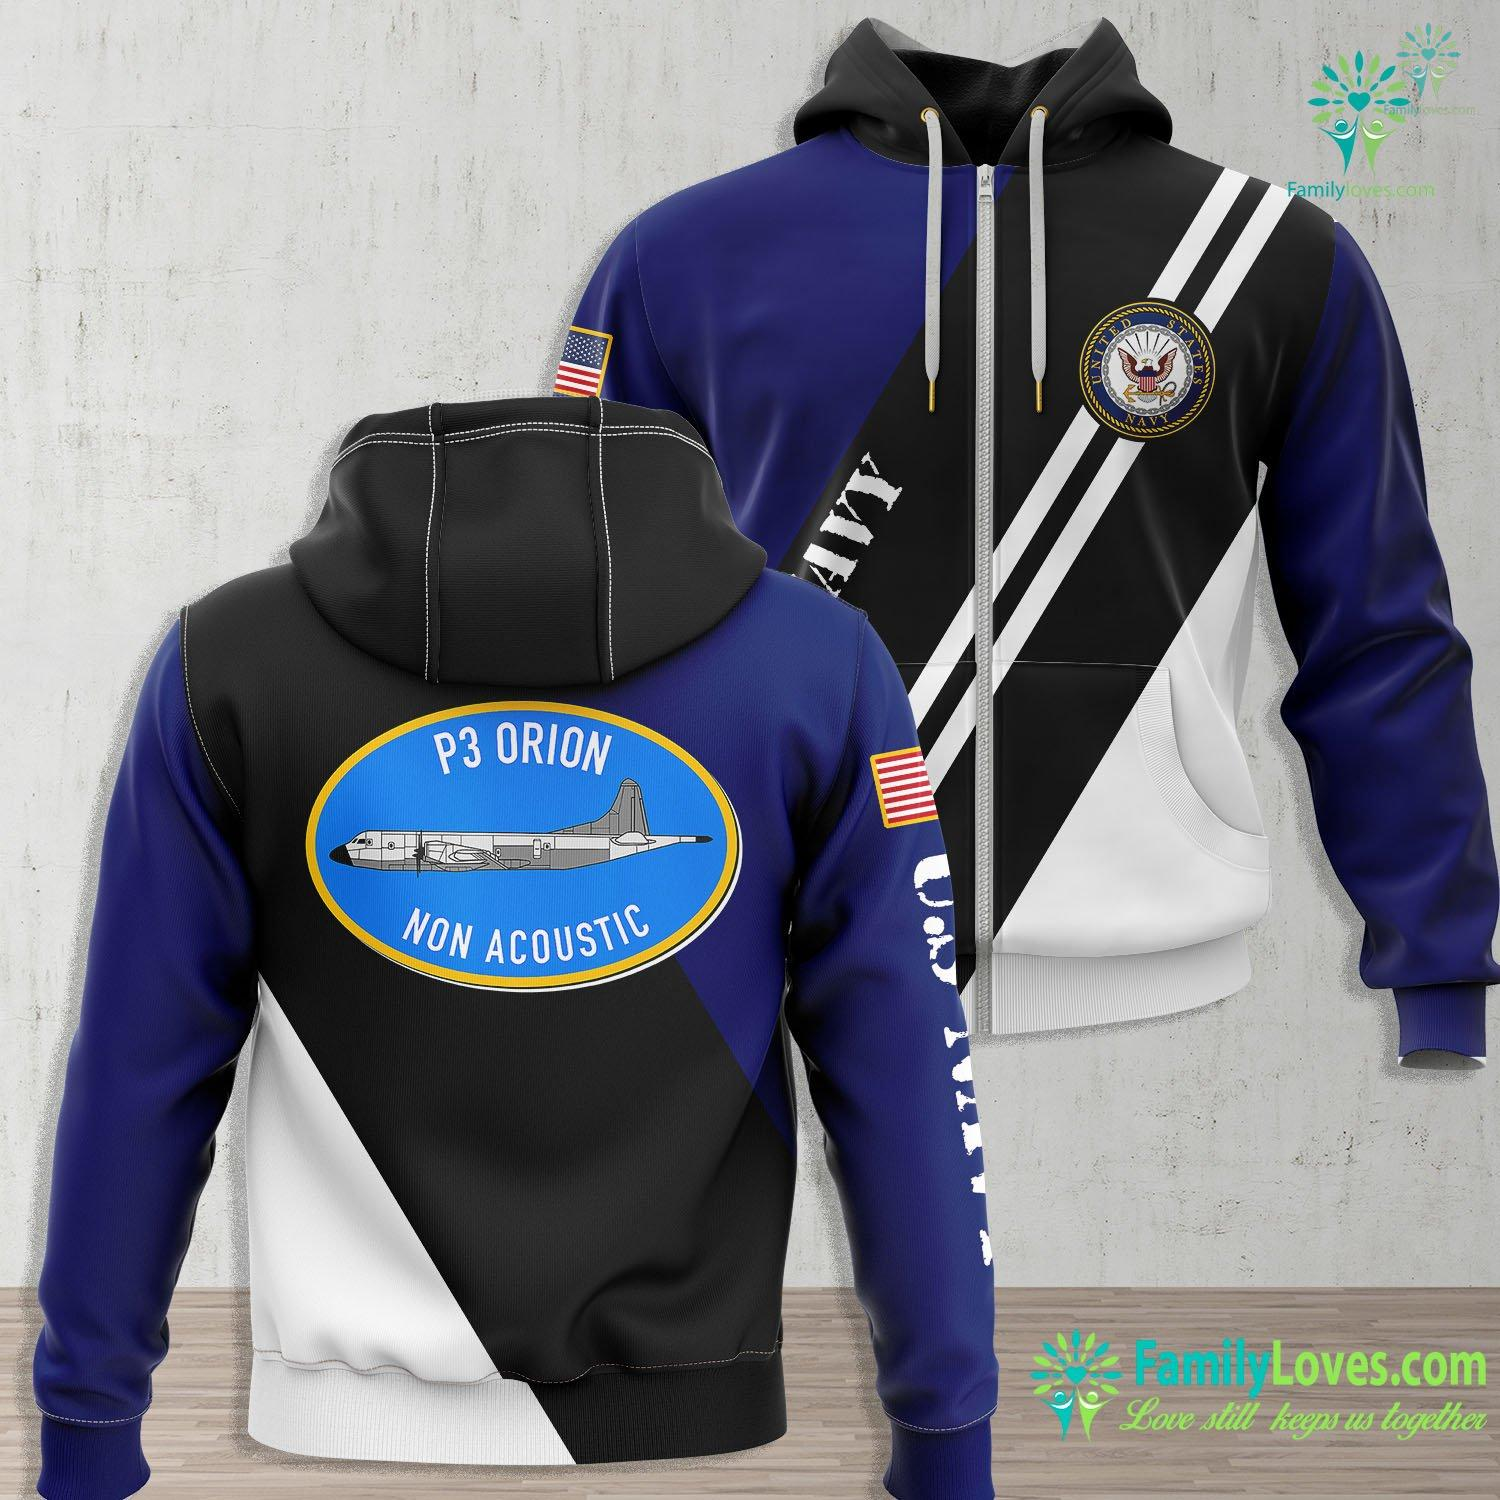 Us Navy Uss Theodore Roosevelt Us Navy P3 Orion Non Acoustic Operator Tee Navy Zip-up Hoodie All Over Print Familyloves.com